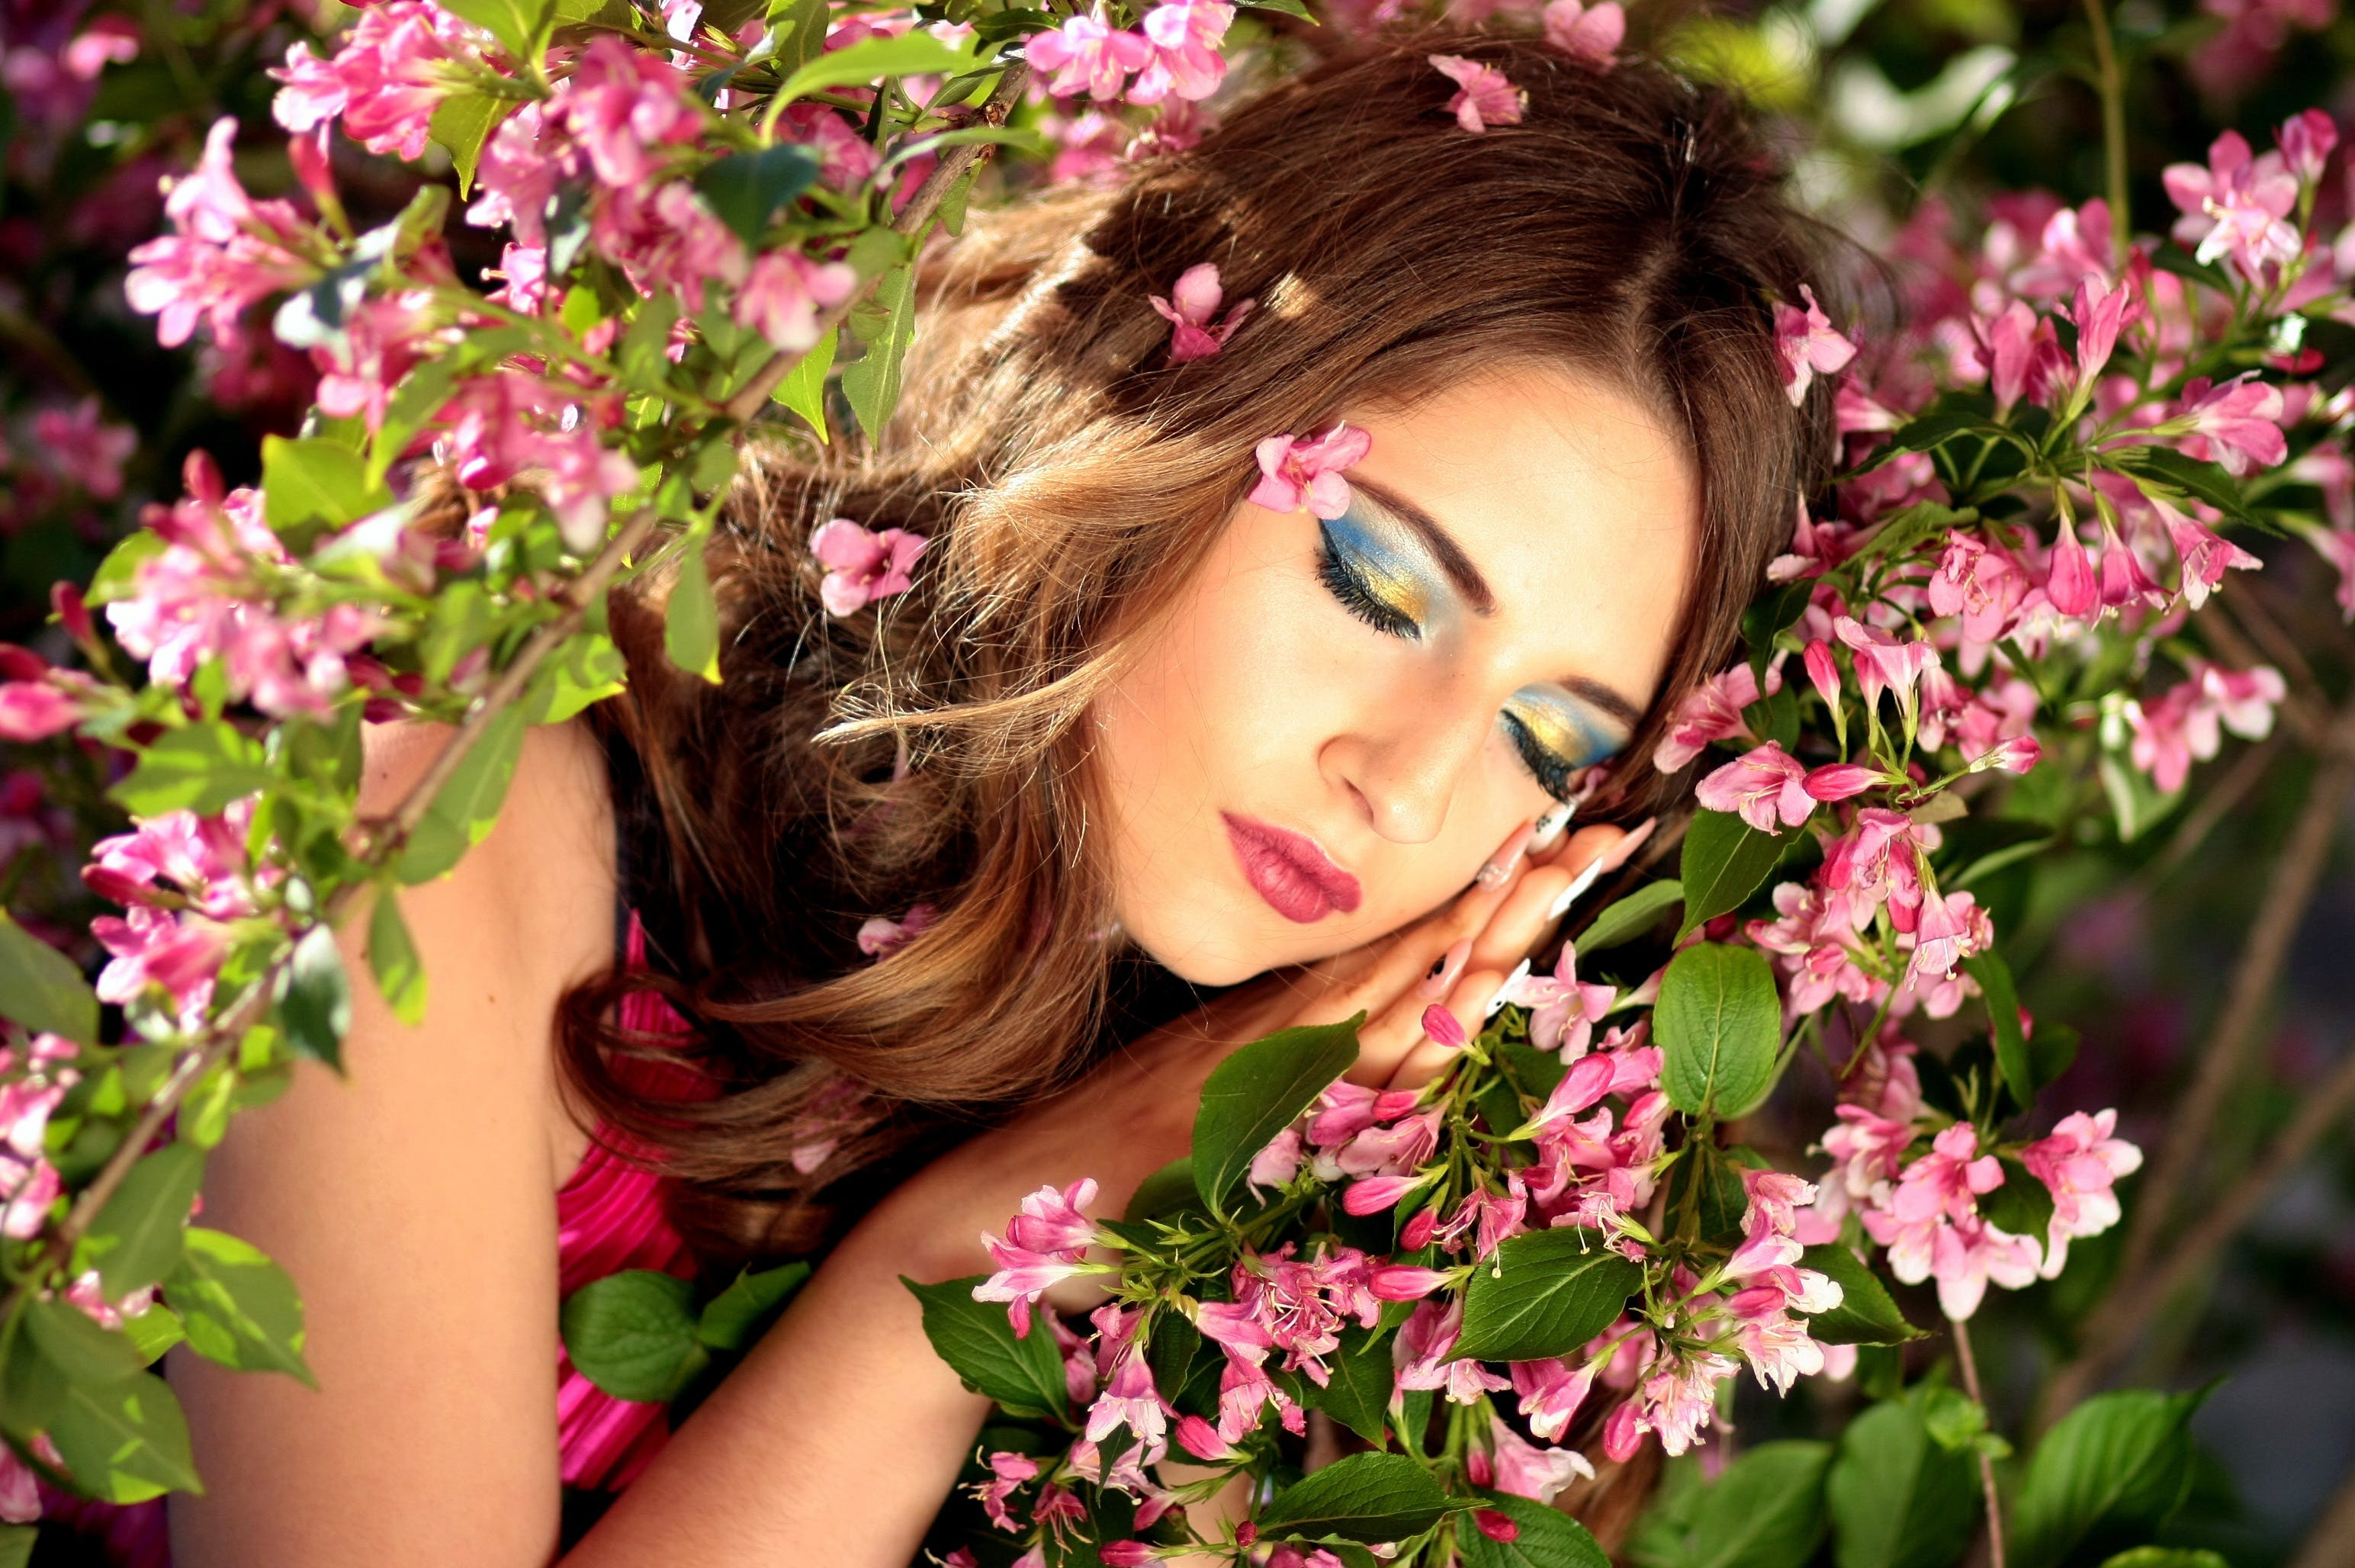 Woman Sleeping on Pink Flowers